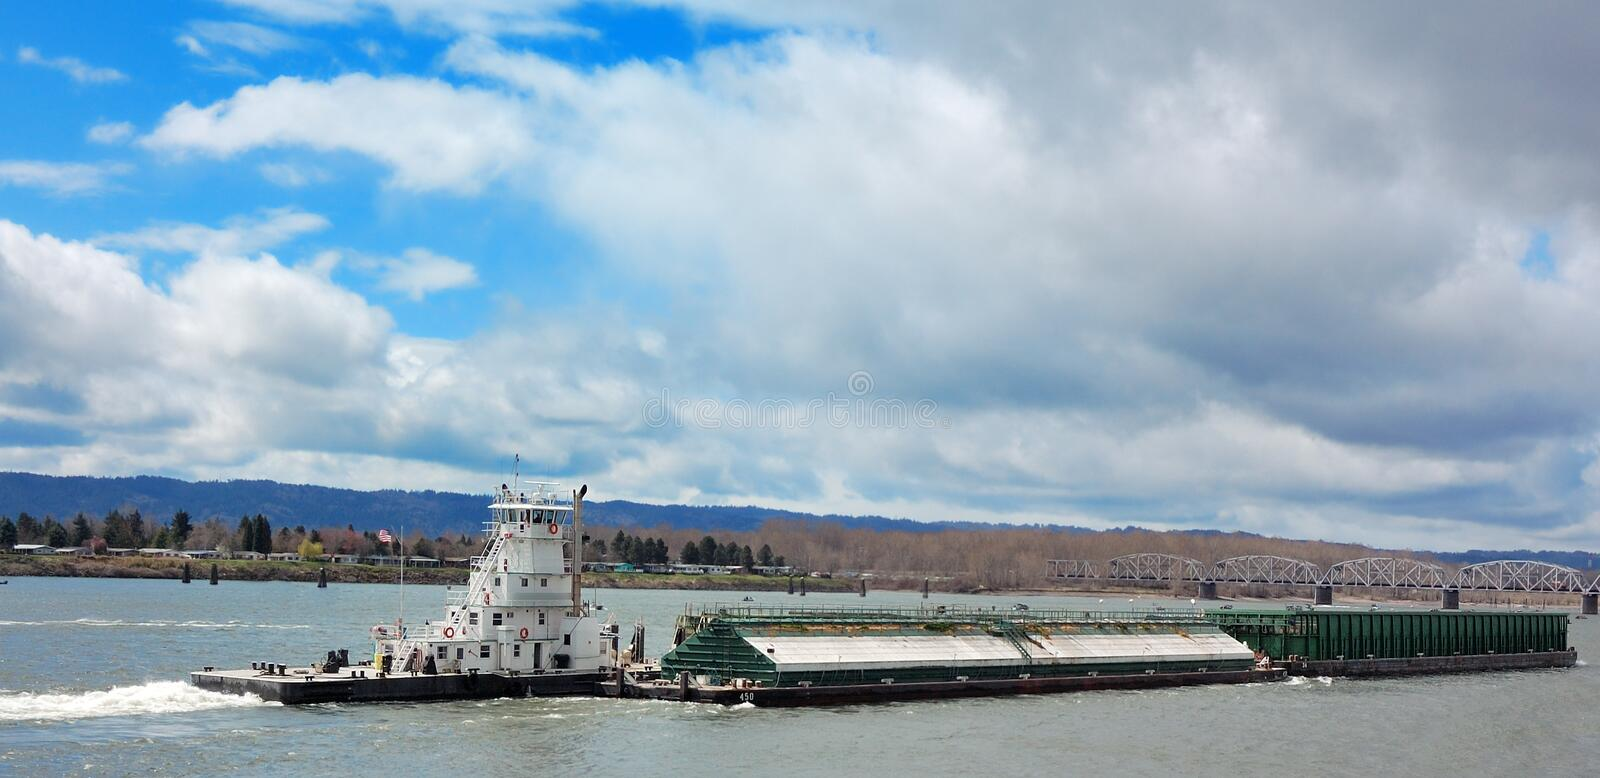 Tugboat and Barge on River. A tugboat pushing a barge under clouds with blue sky peeking through royalty free stock photos